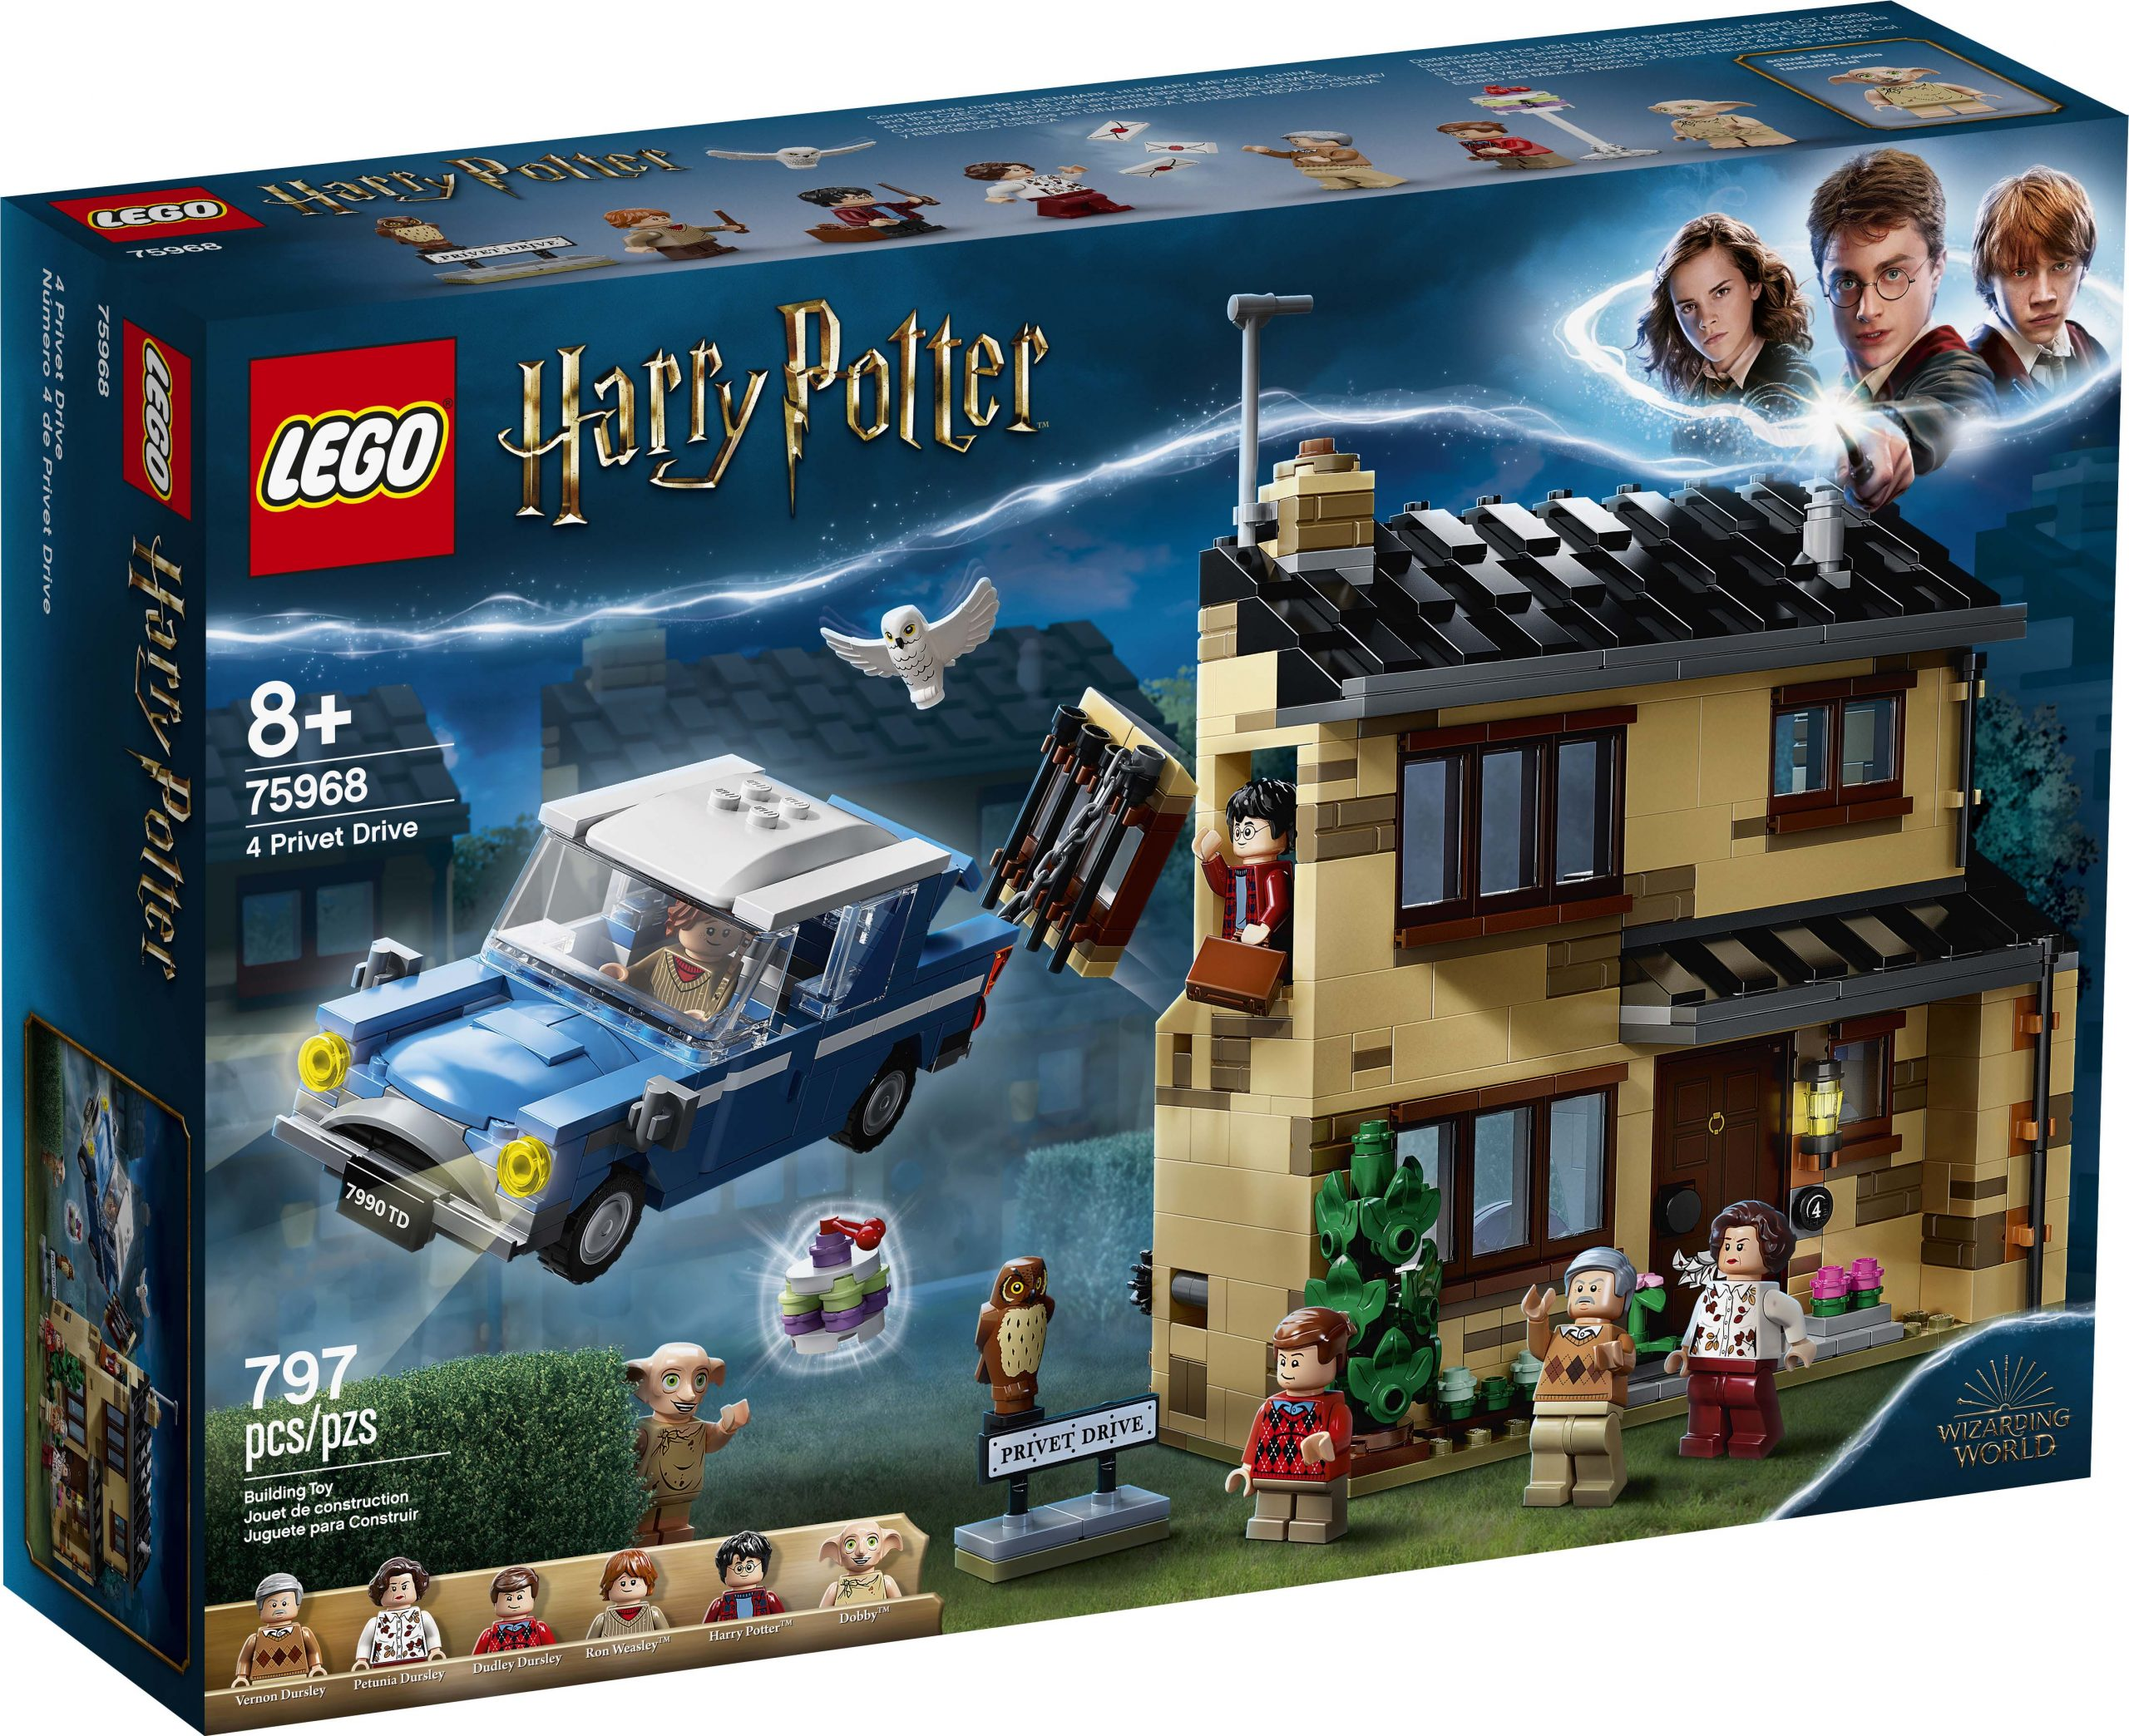 LEGO-Harry-Potter-4-Privet-Drive-75968